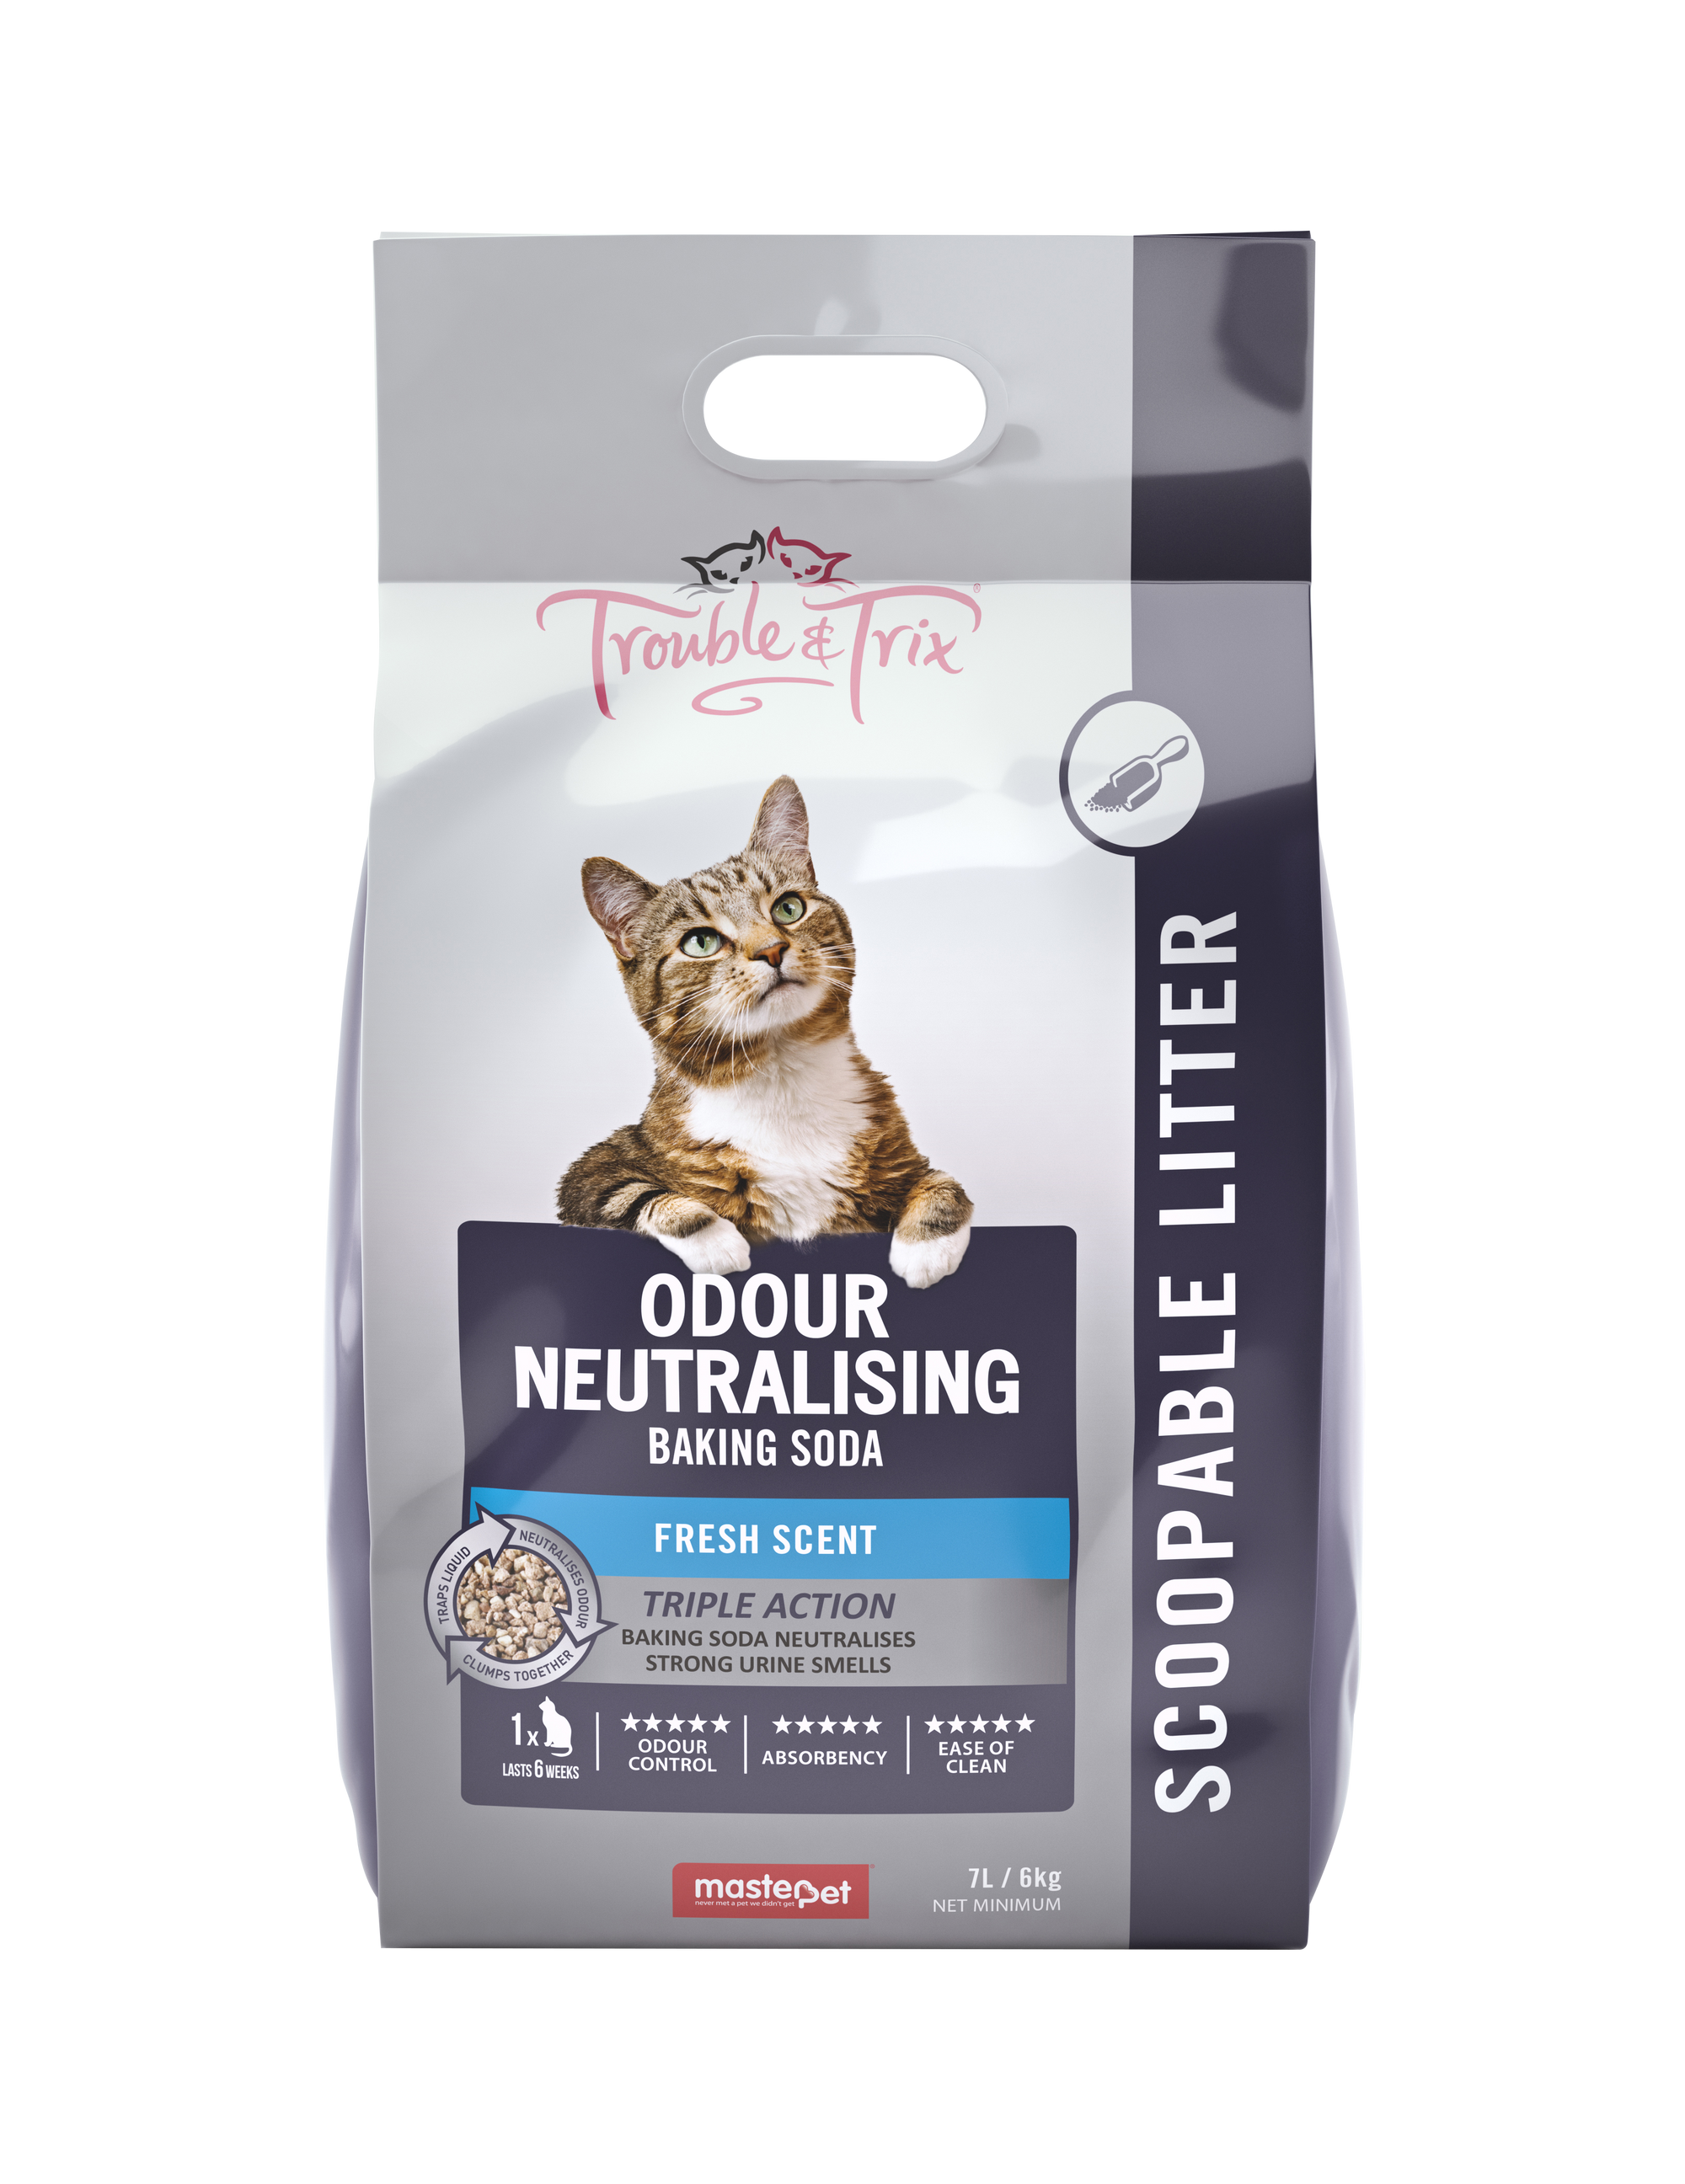 T&T Odour Neutralising + Baking Soda Cat Litter 7L - RSPCA VIC